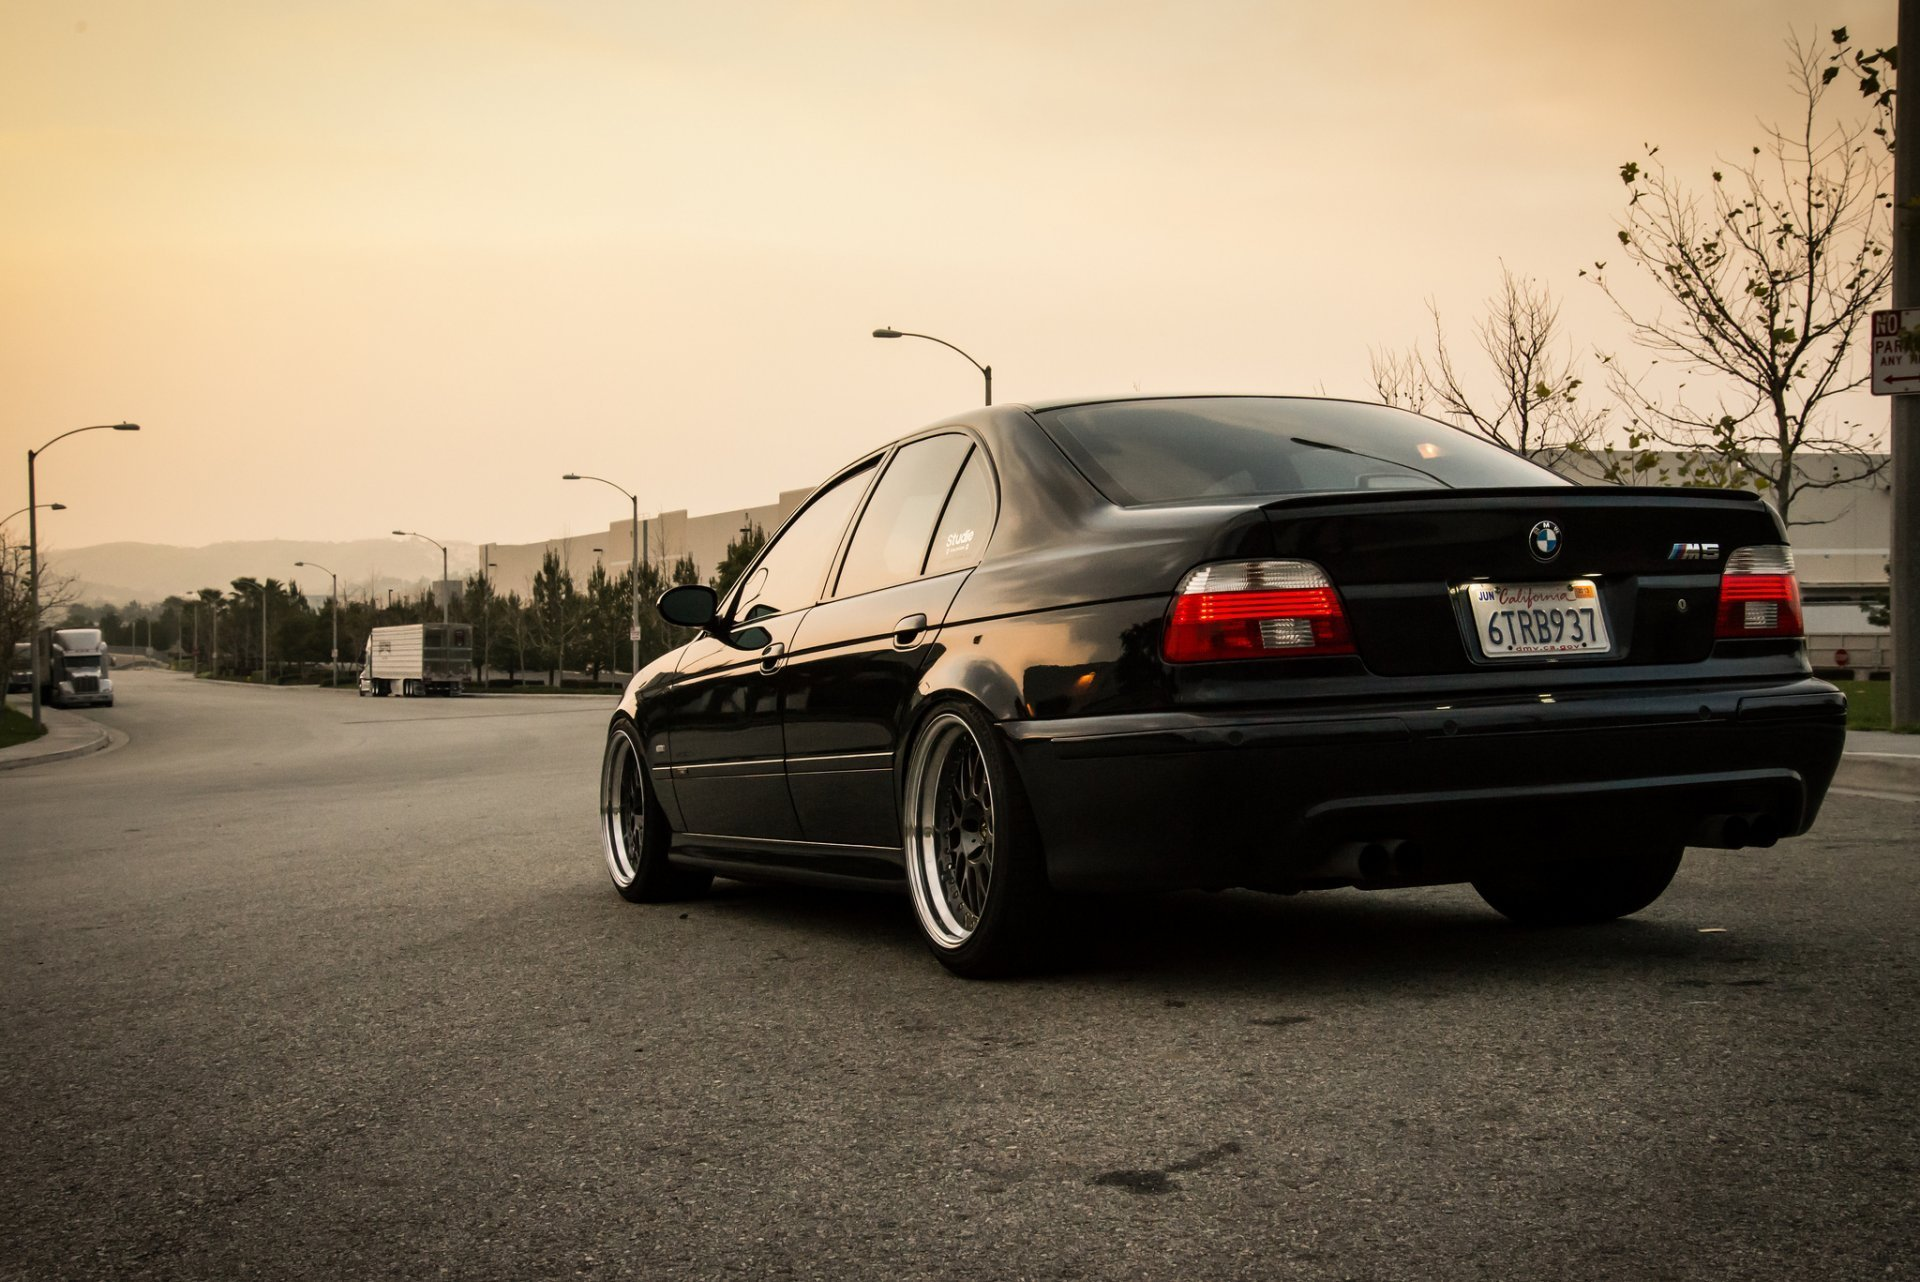 Bmw E39 M5 Hd Download Wallpapers on Jakposttravel 1920x1282